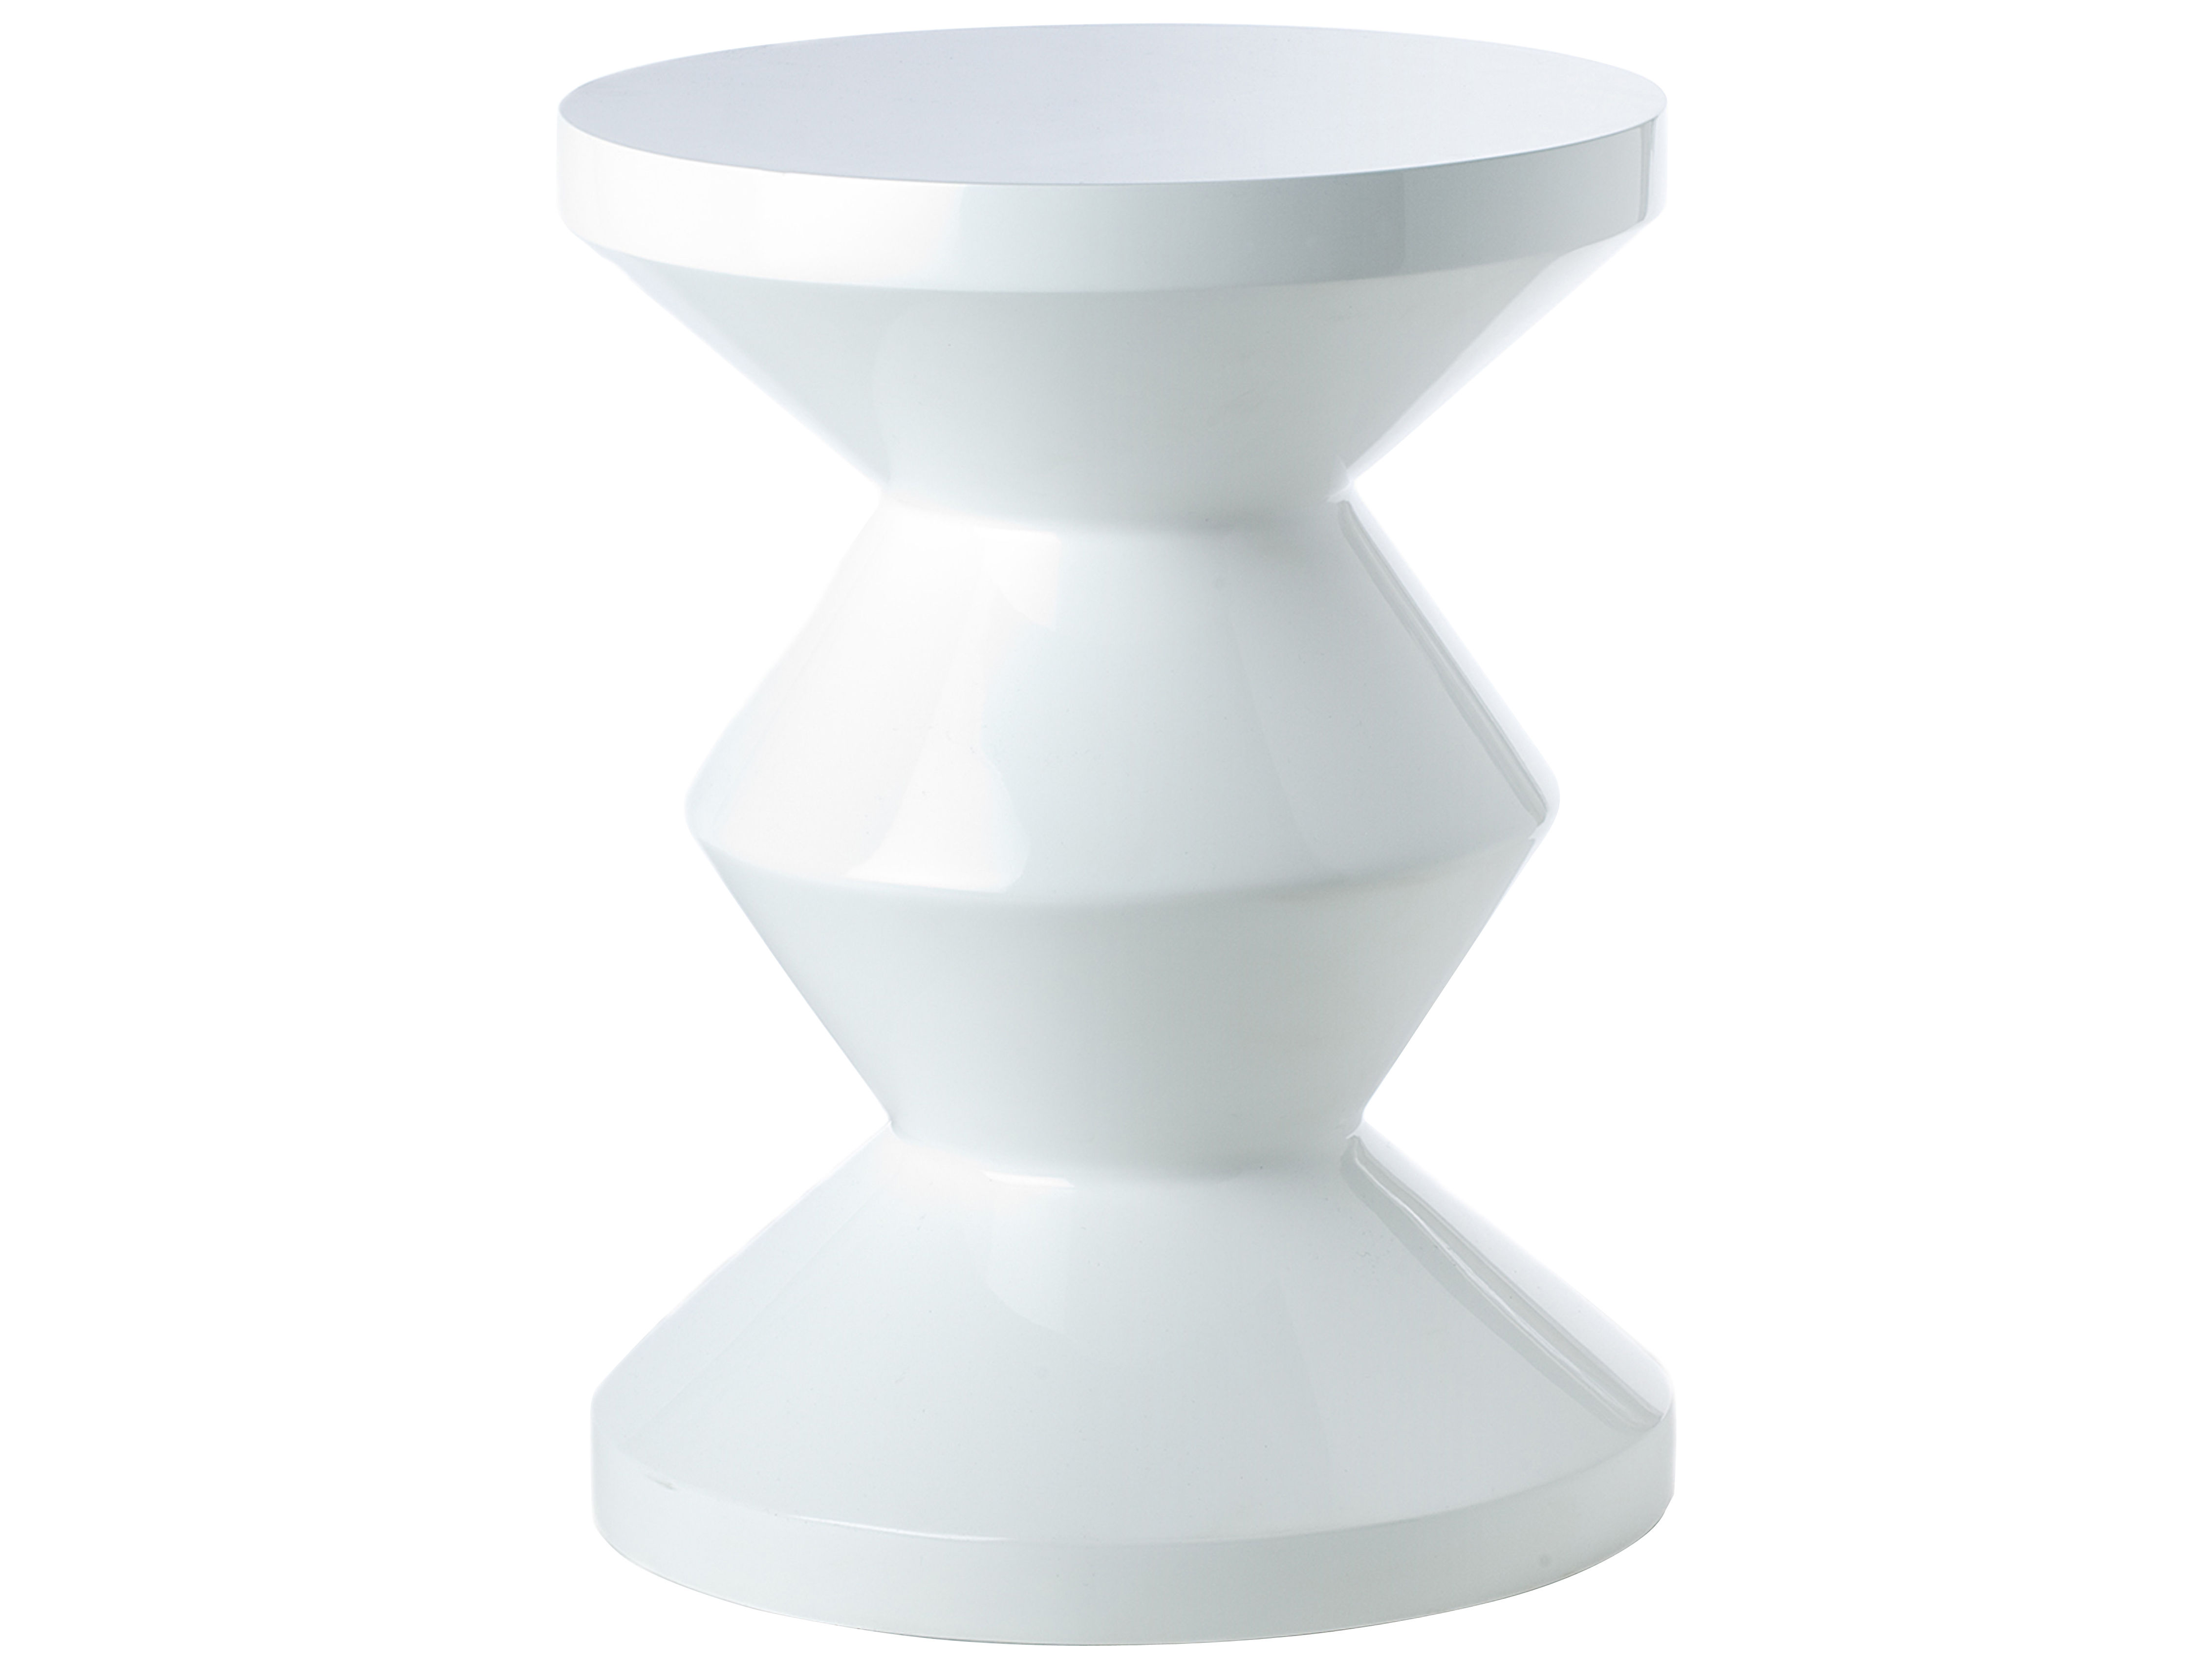 Furniture - Stools - Zig Zag Stool - Stool/Low table - Exclusivity by Pols Potten - White - Lacquered polyester